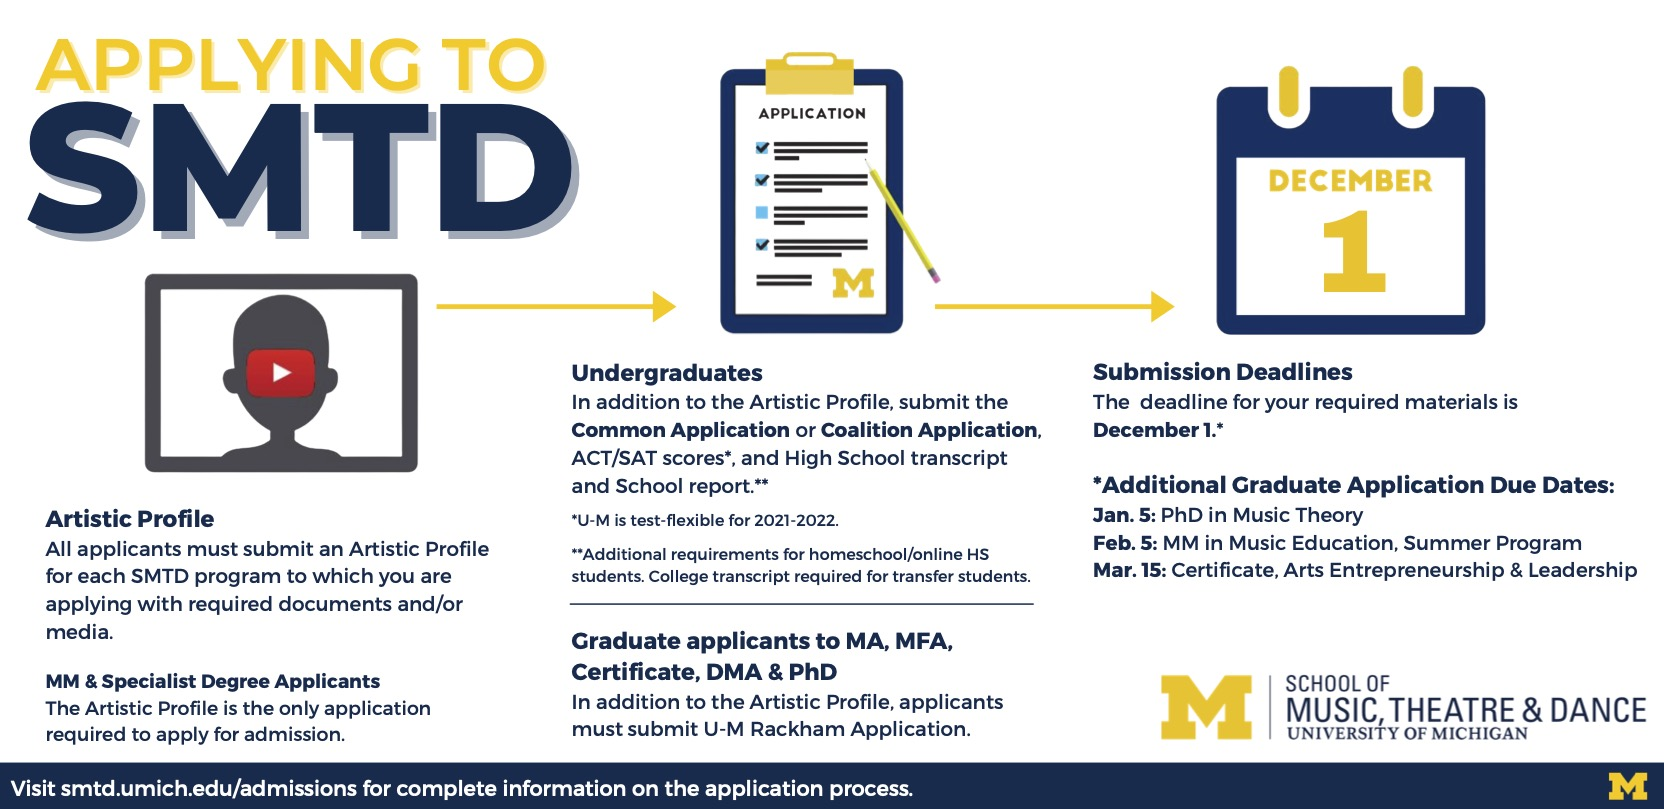 Applying to SMTD: SMTD is a highly selective professional school with rich and diverse undergraduate and graduate programs. There are many paths that prospective students travel to gain the skills needed to be competitive for admission. The best way to find out if you are a great fit for SMTD is to apply. The application process requires submission of an academic application to the University of Michigan and an Artistic profile to SMTD. Both are due December 1.